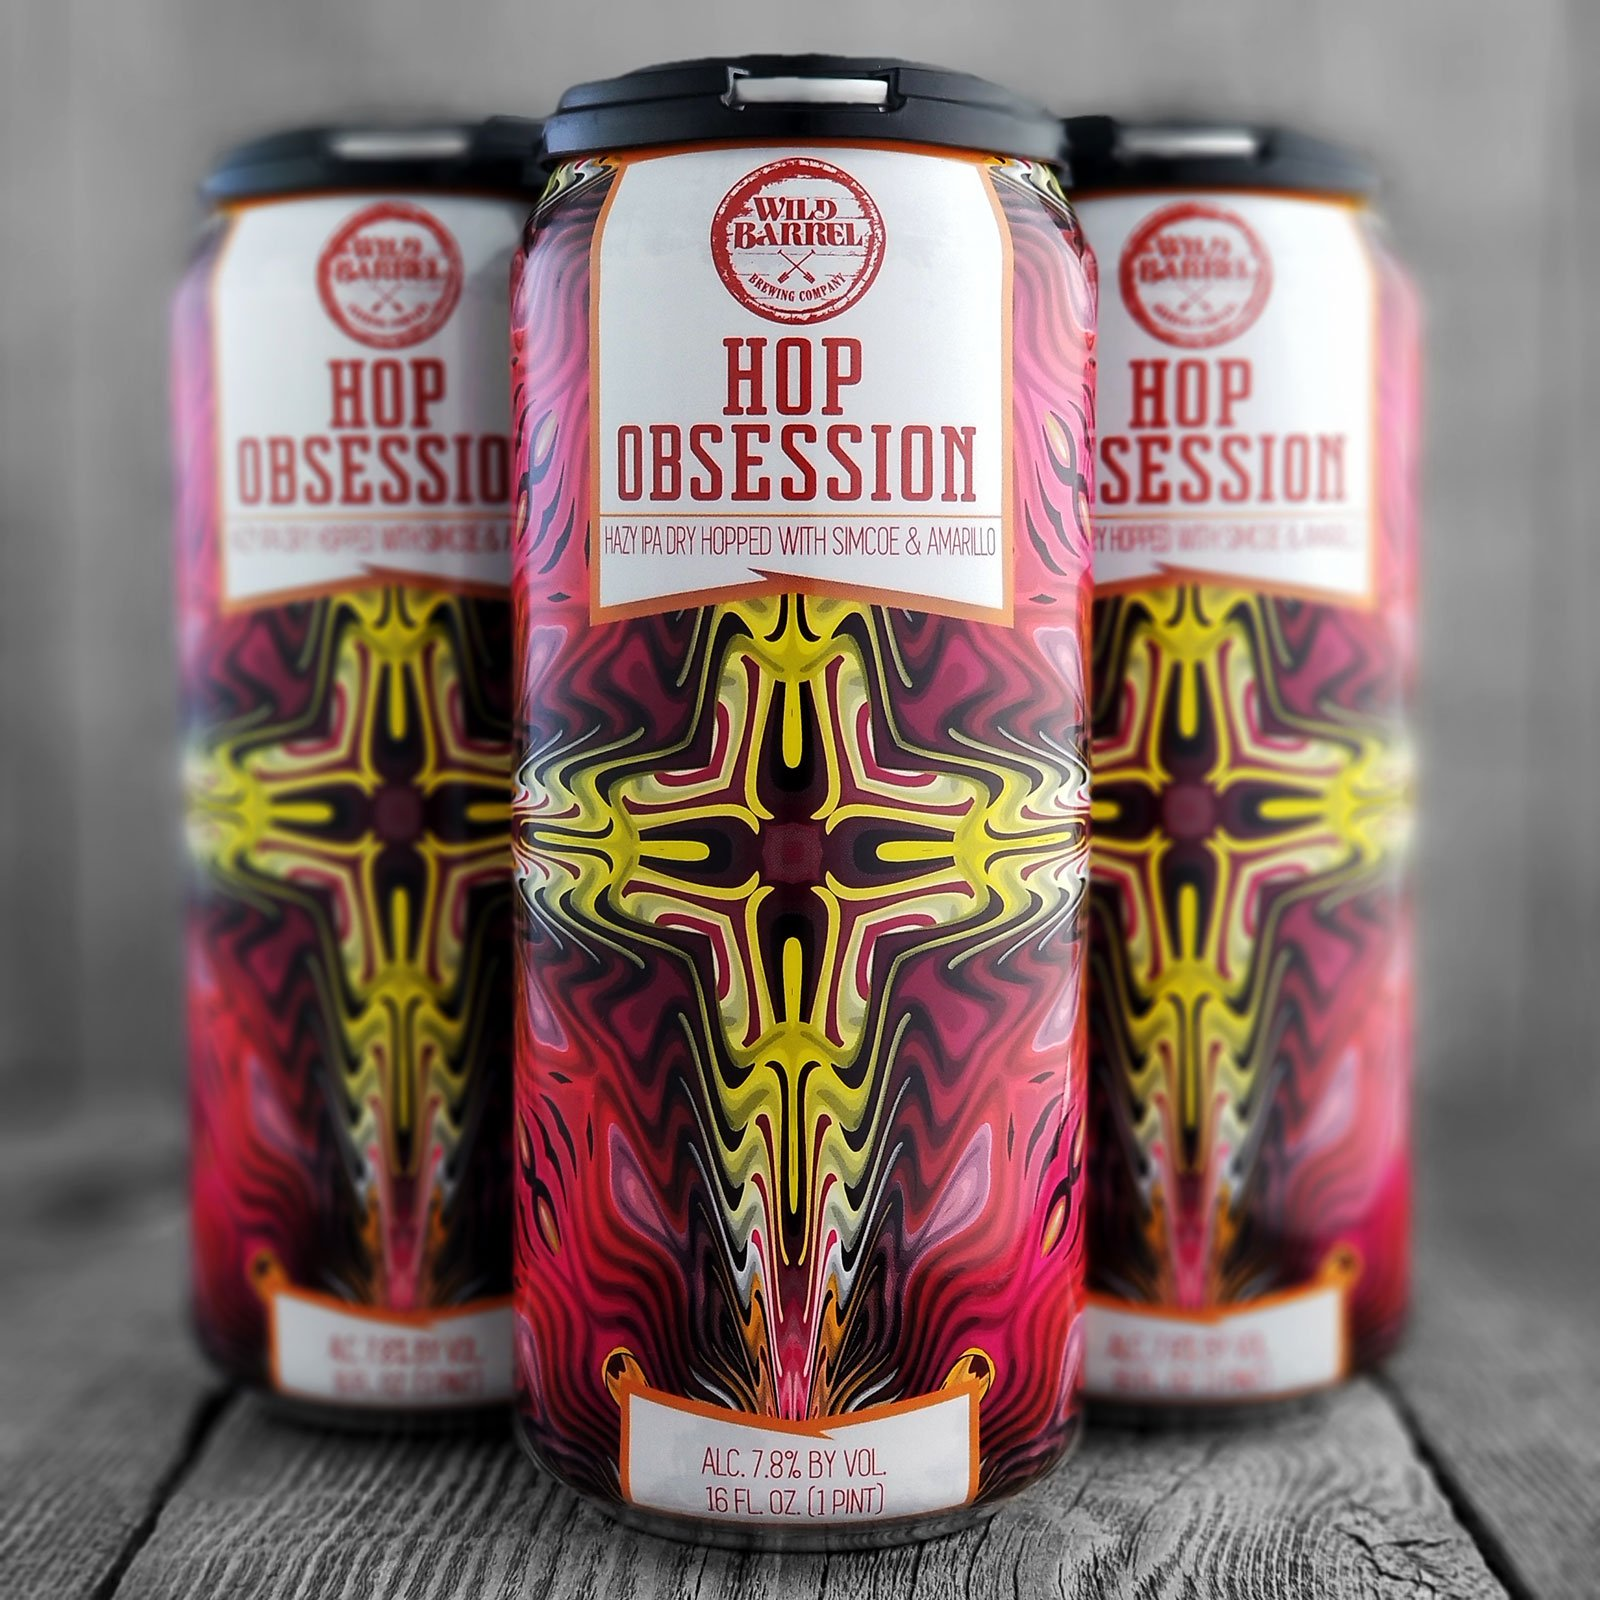 wild-barrel-hop-obsession-4pack-cans_2048x2048.jpg